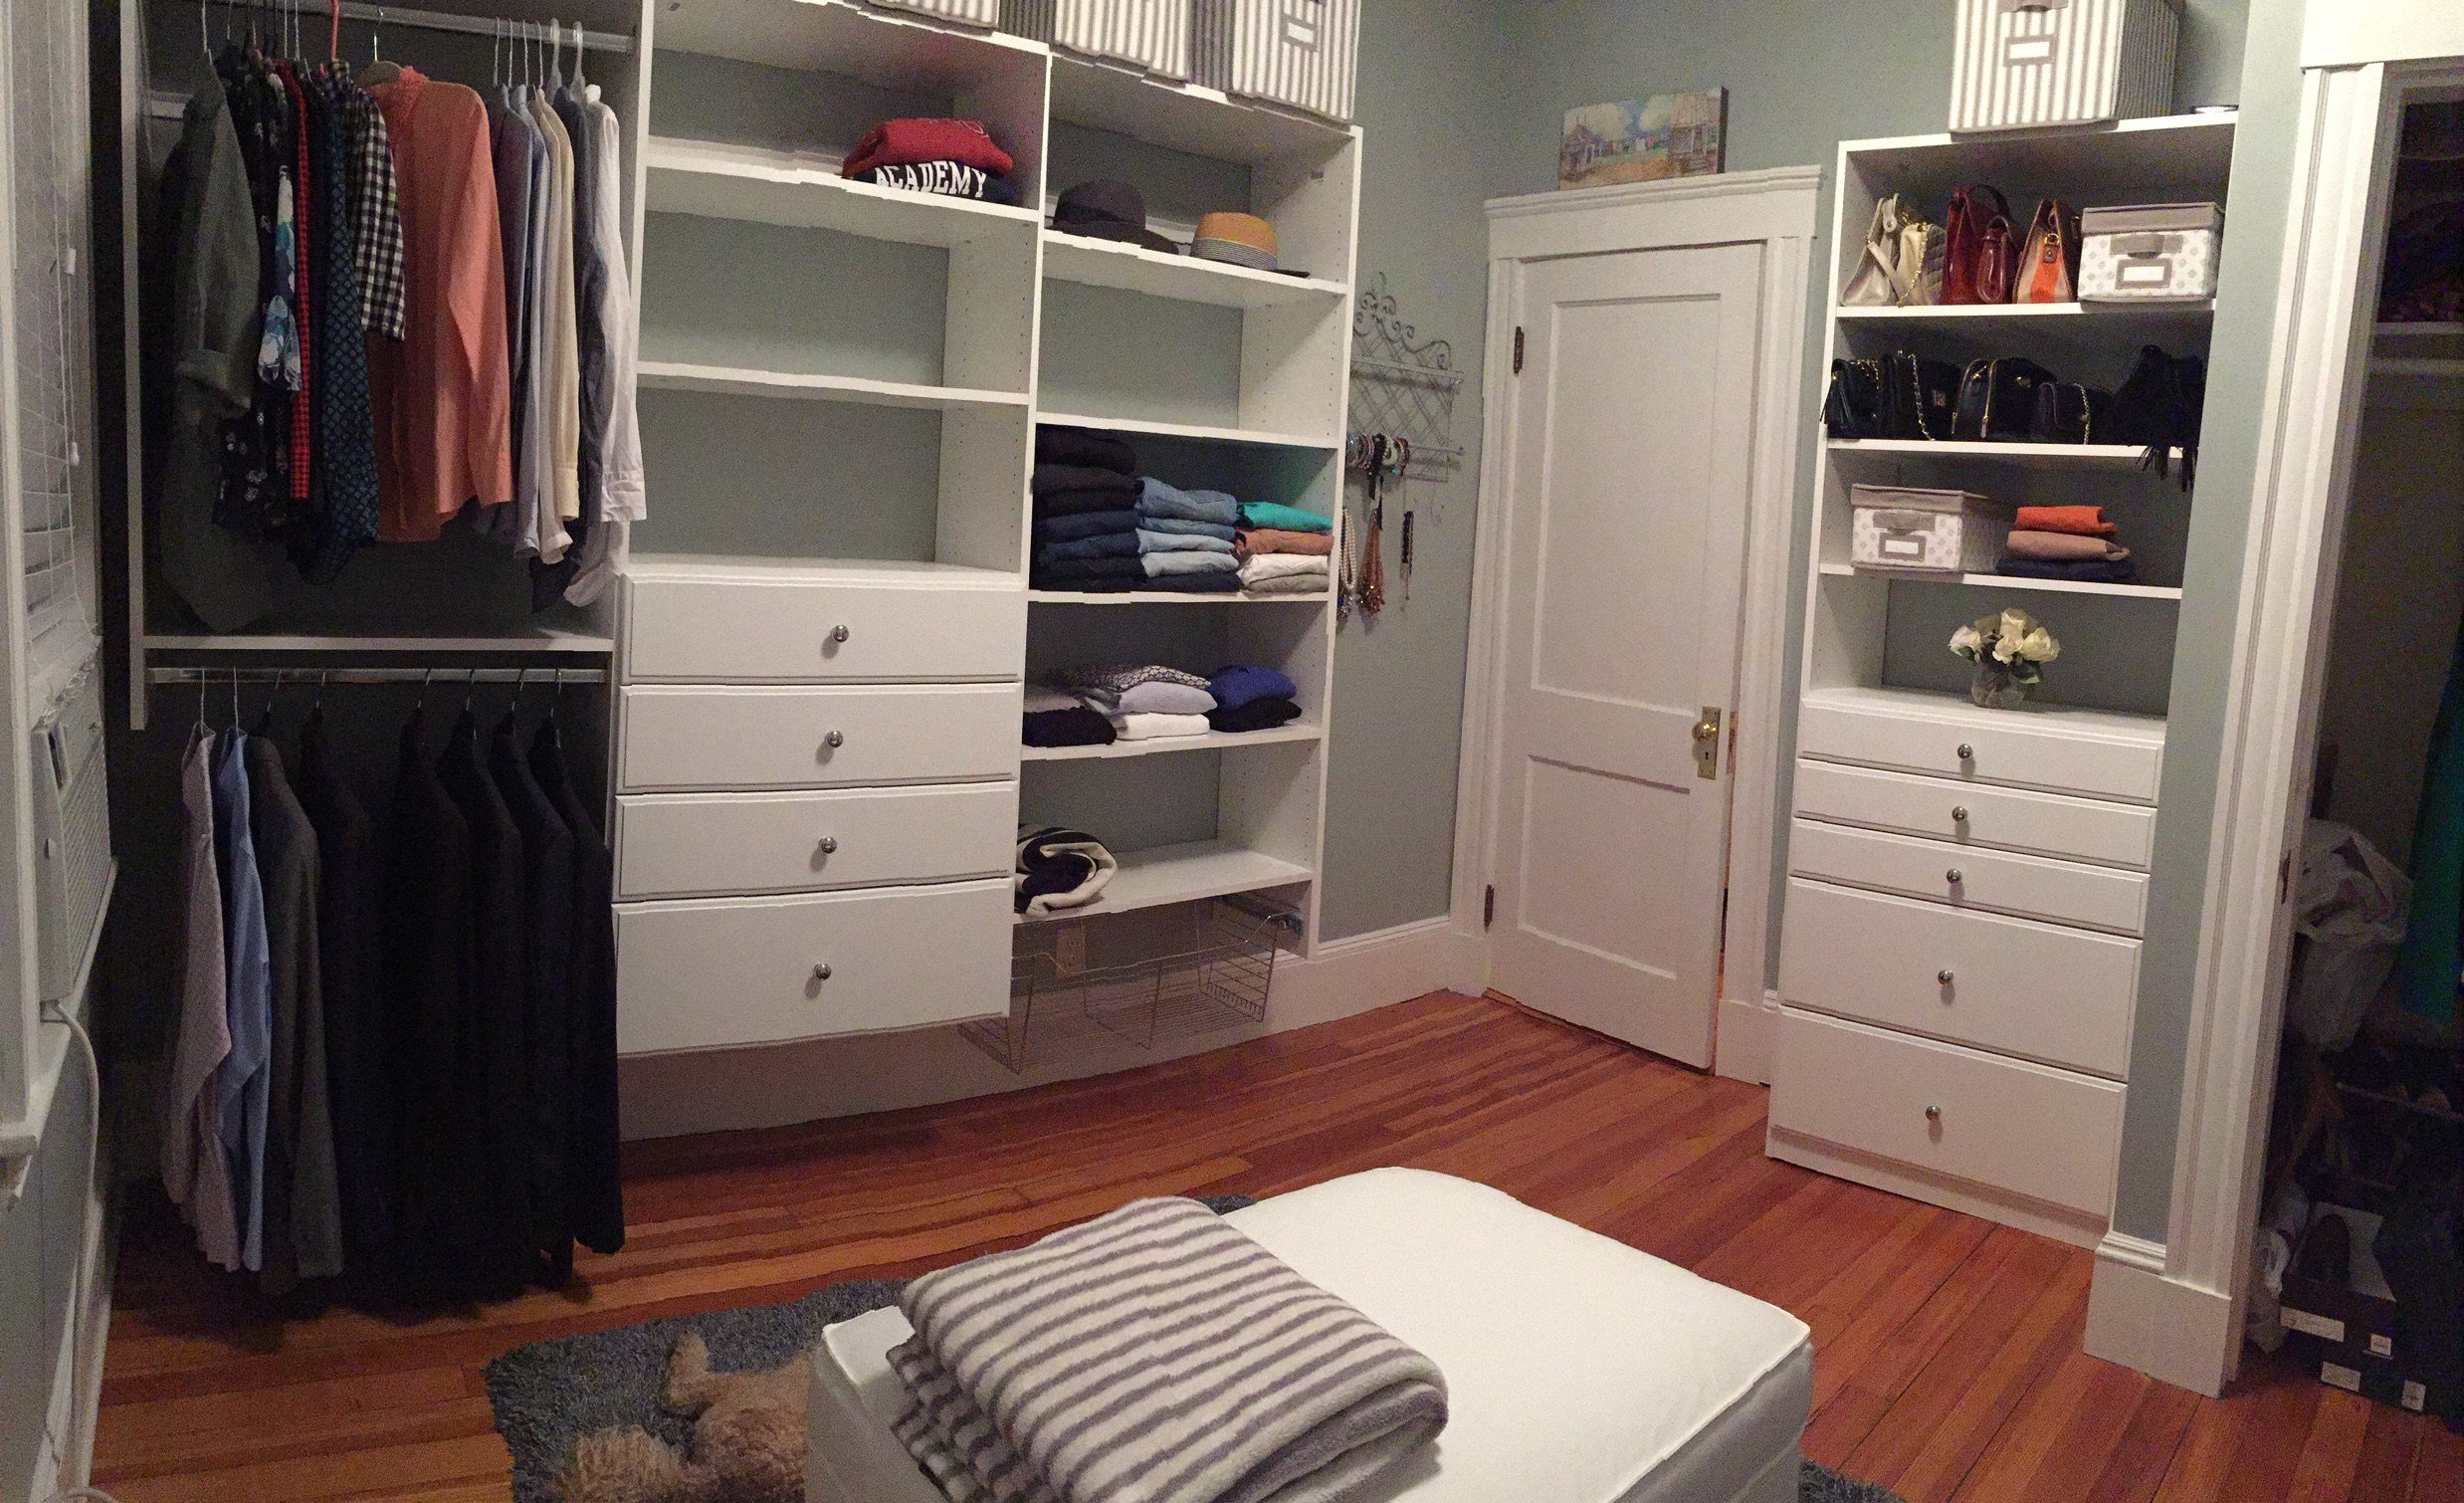 Best Turn A Spare Bedroom Into A Walk In Closet – You Bet Your With Pictures